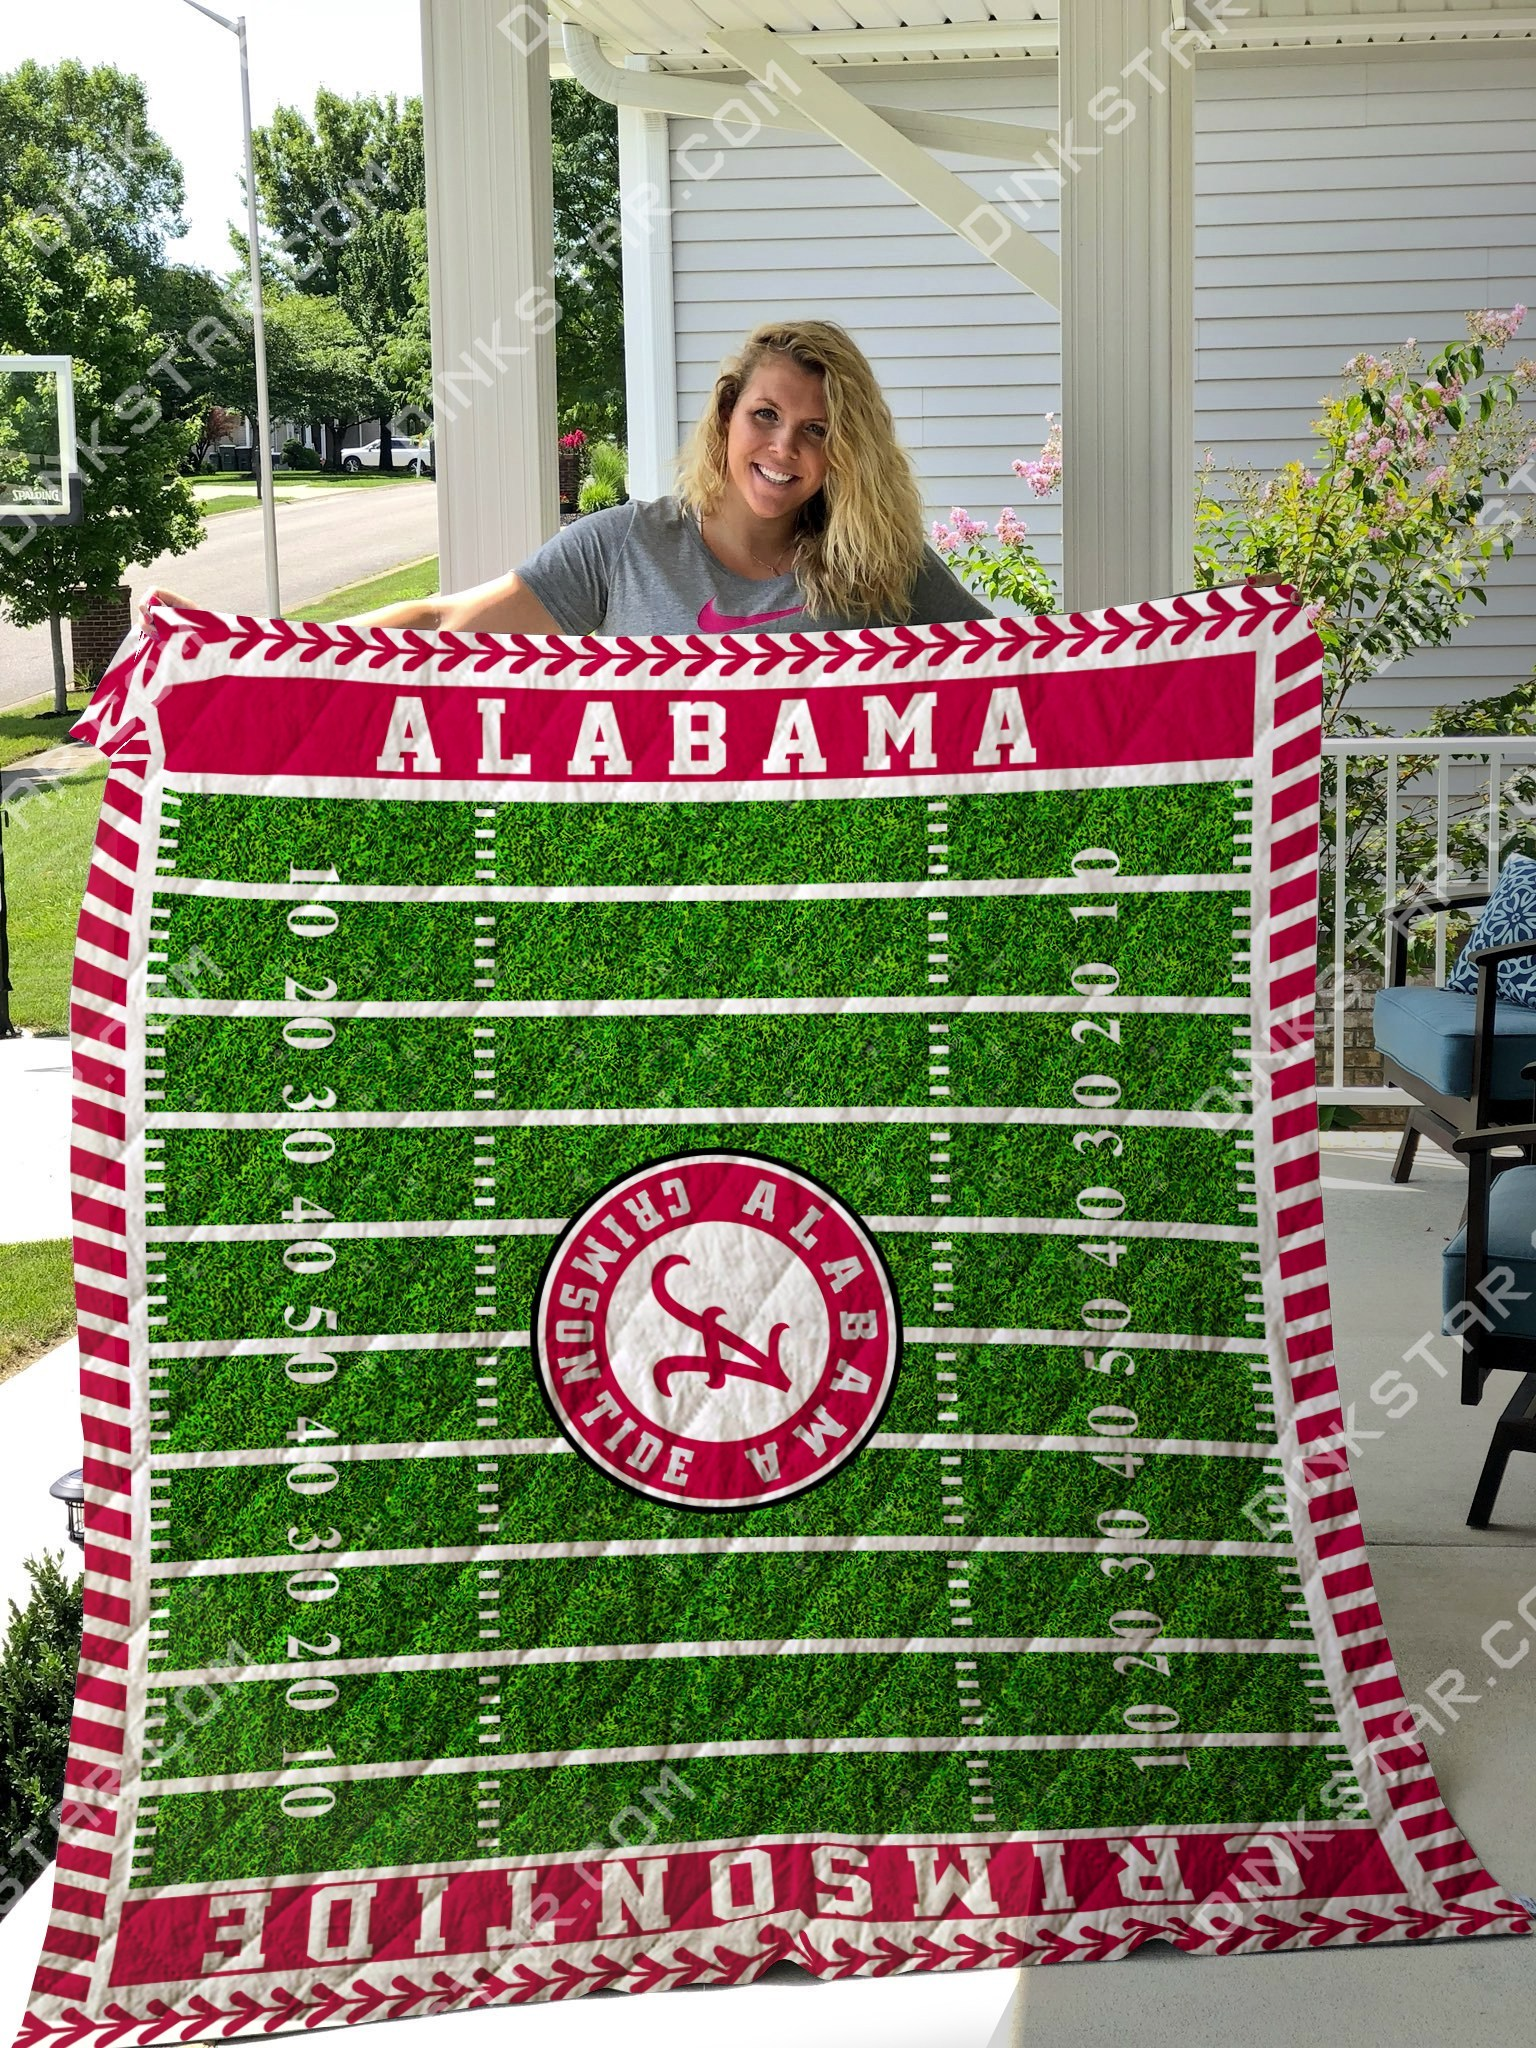 Alabama crimson tide football quilt 3